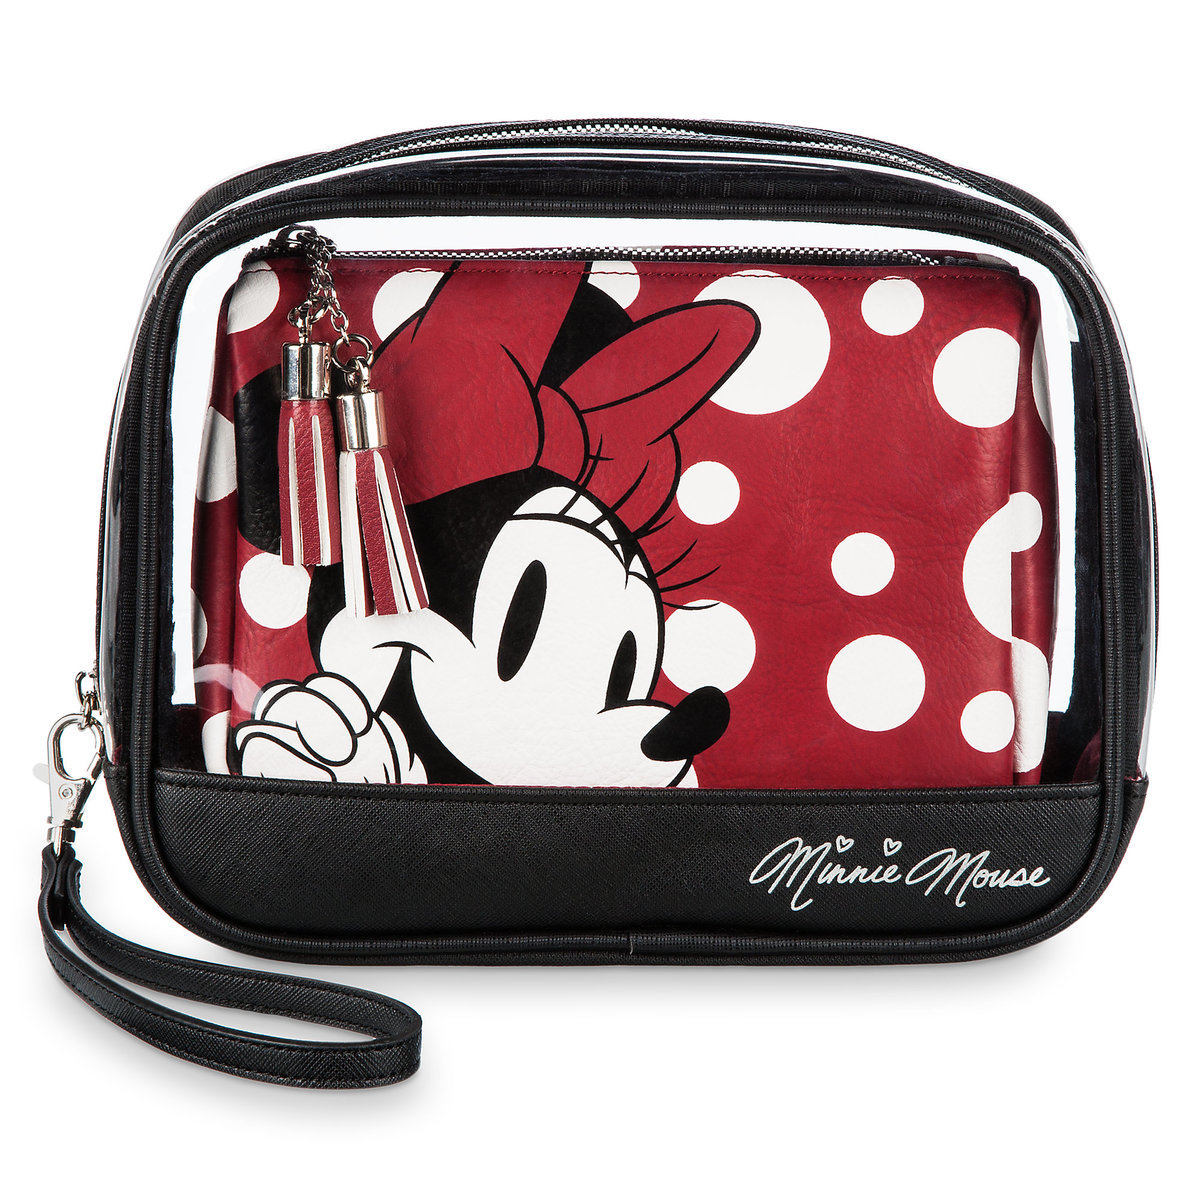 d1c278820ab Product Image of Minnie Mouse Cosmetic Bag Set by Loungefly   1